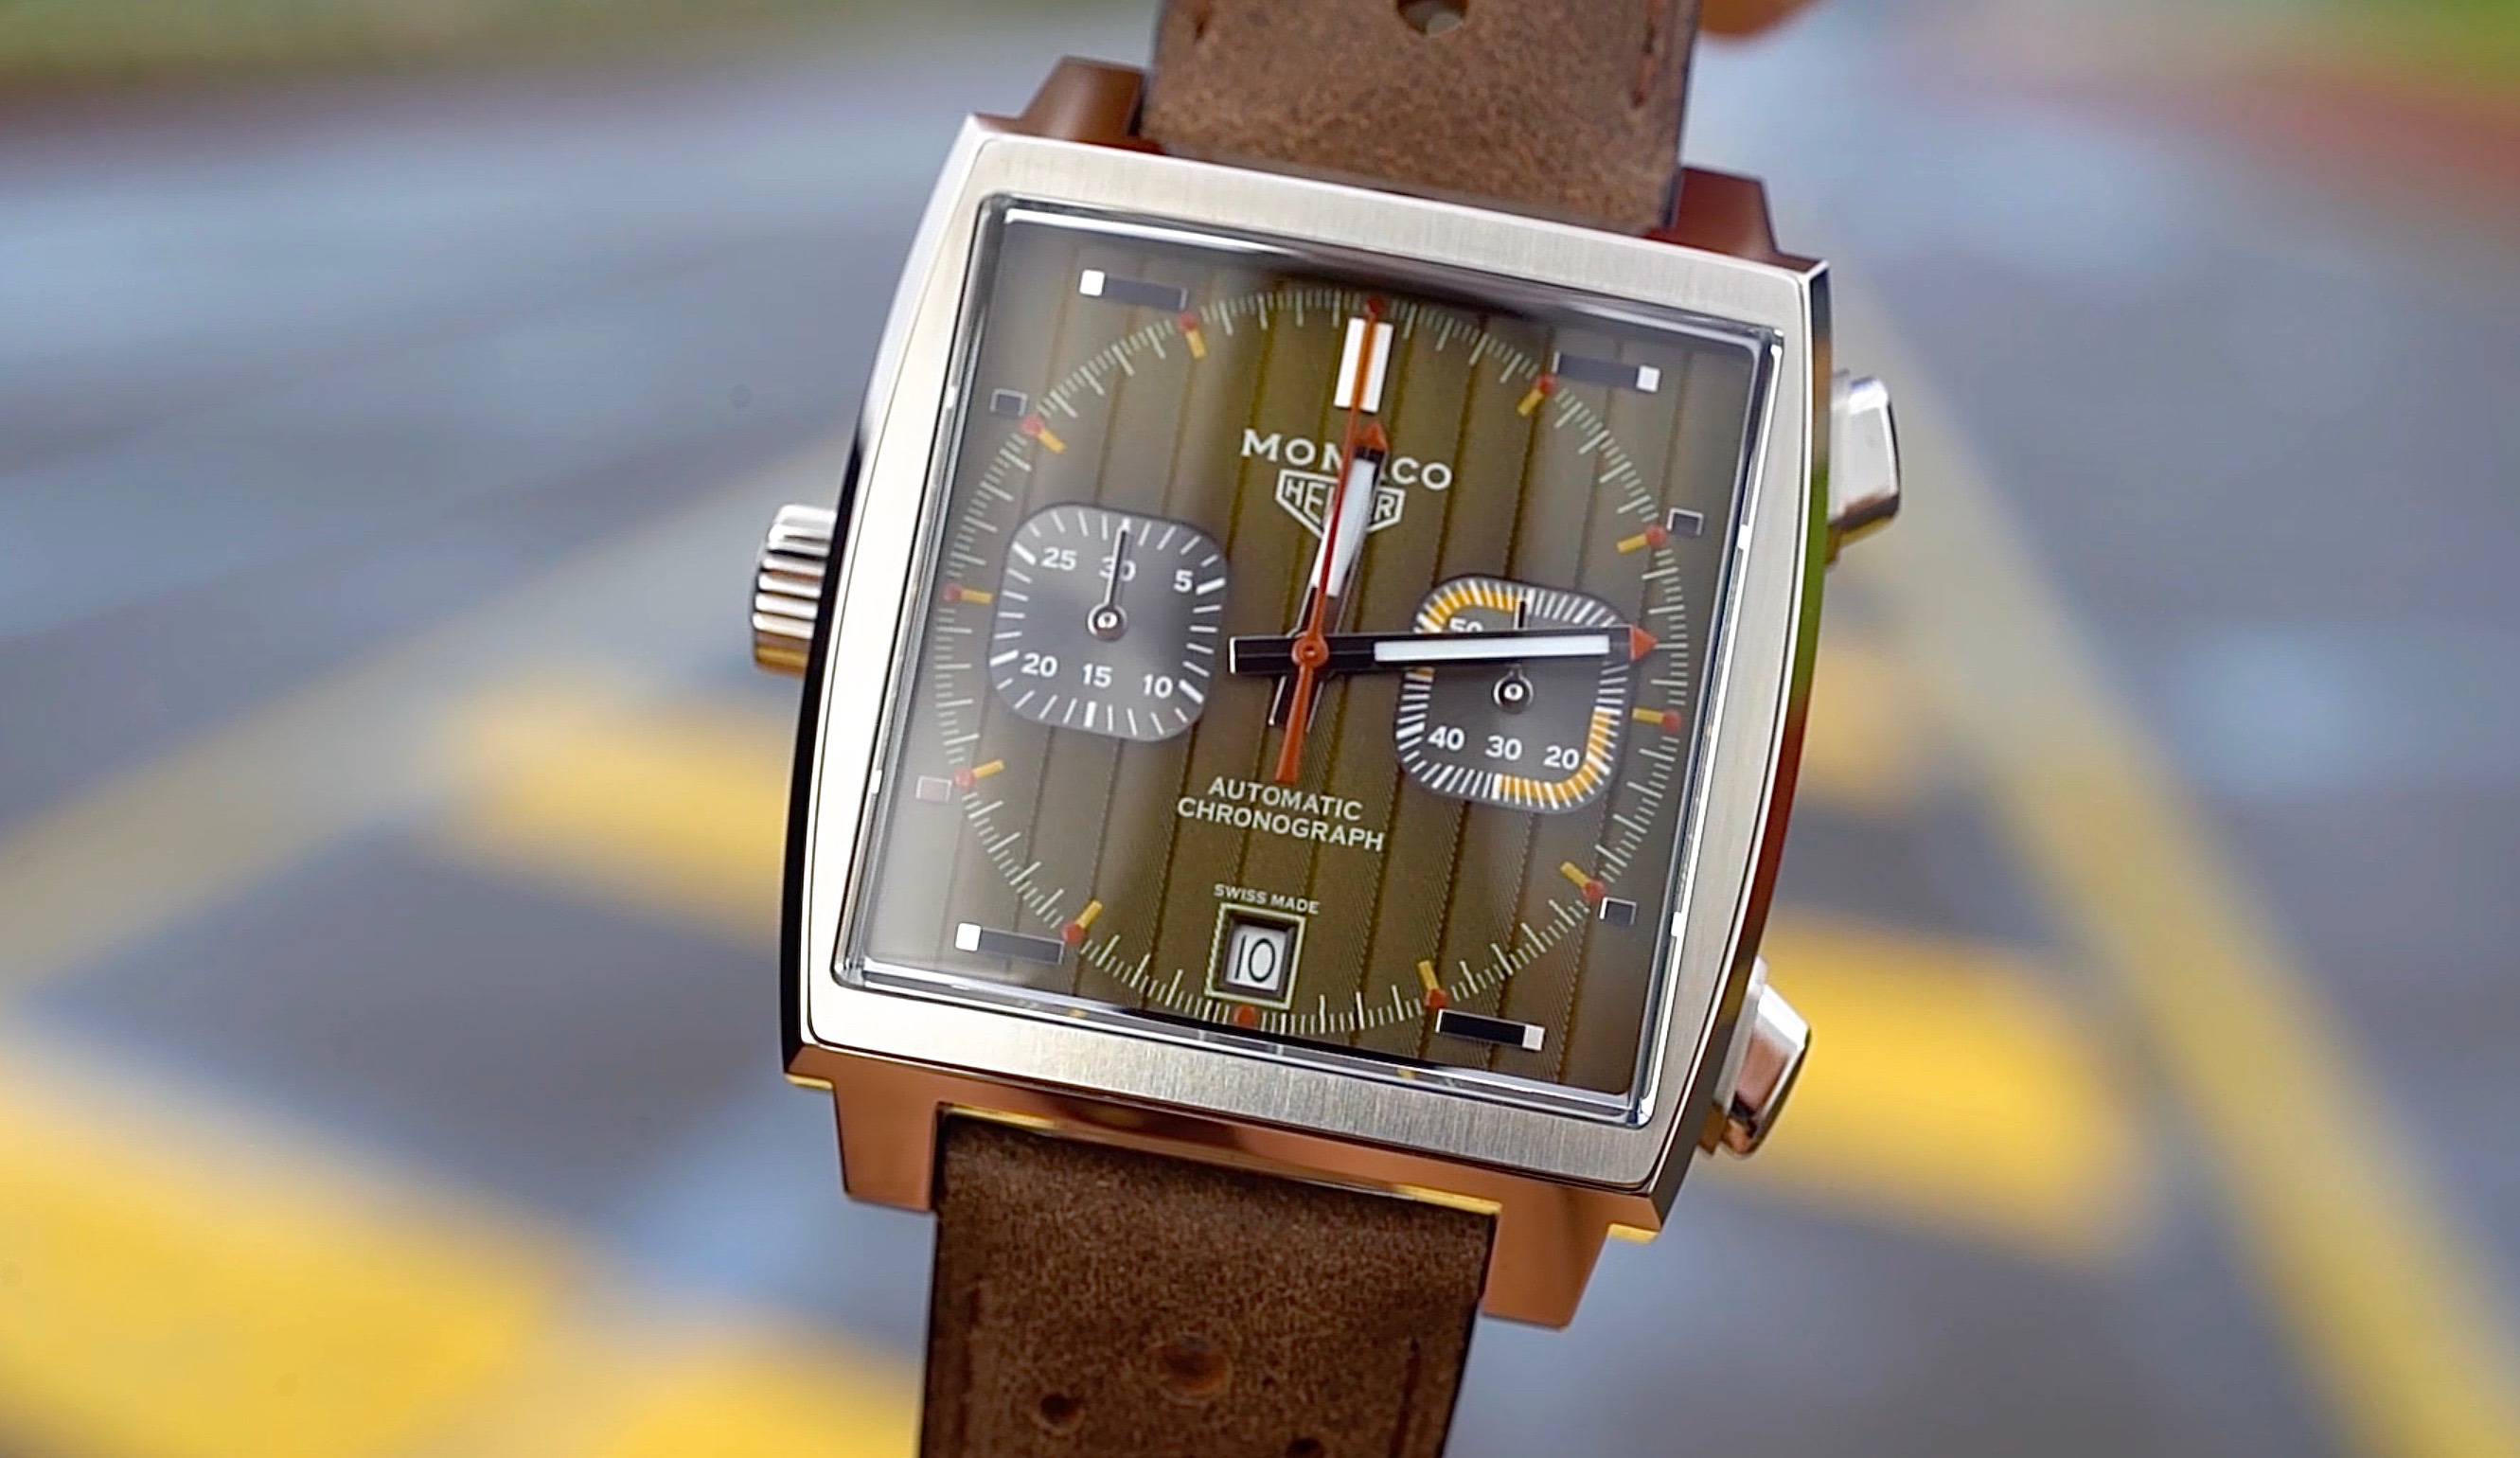 bf674c074fa TAG Heuer Monaco 1969-1979 Limited Edition Archives - Hours And ...